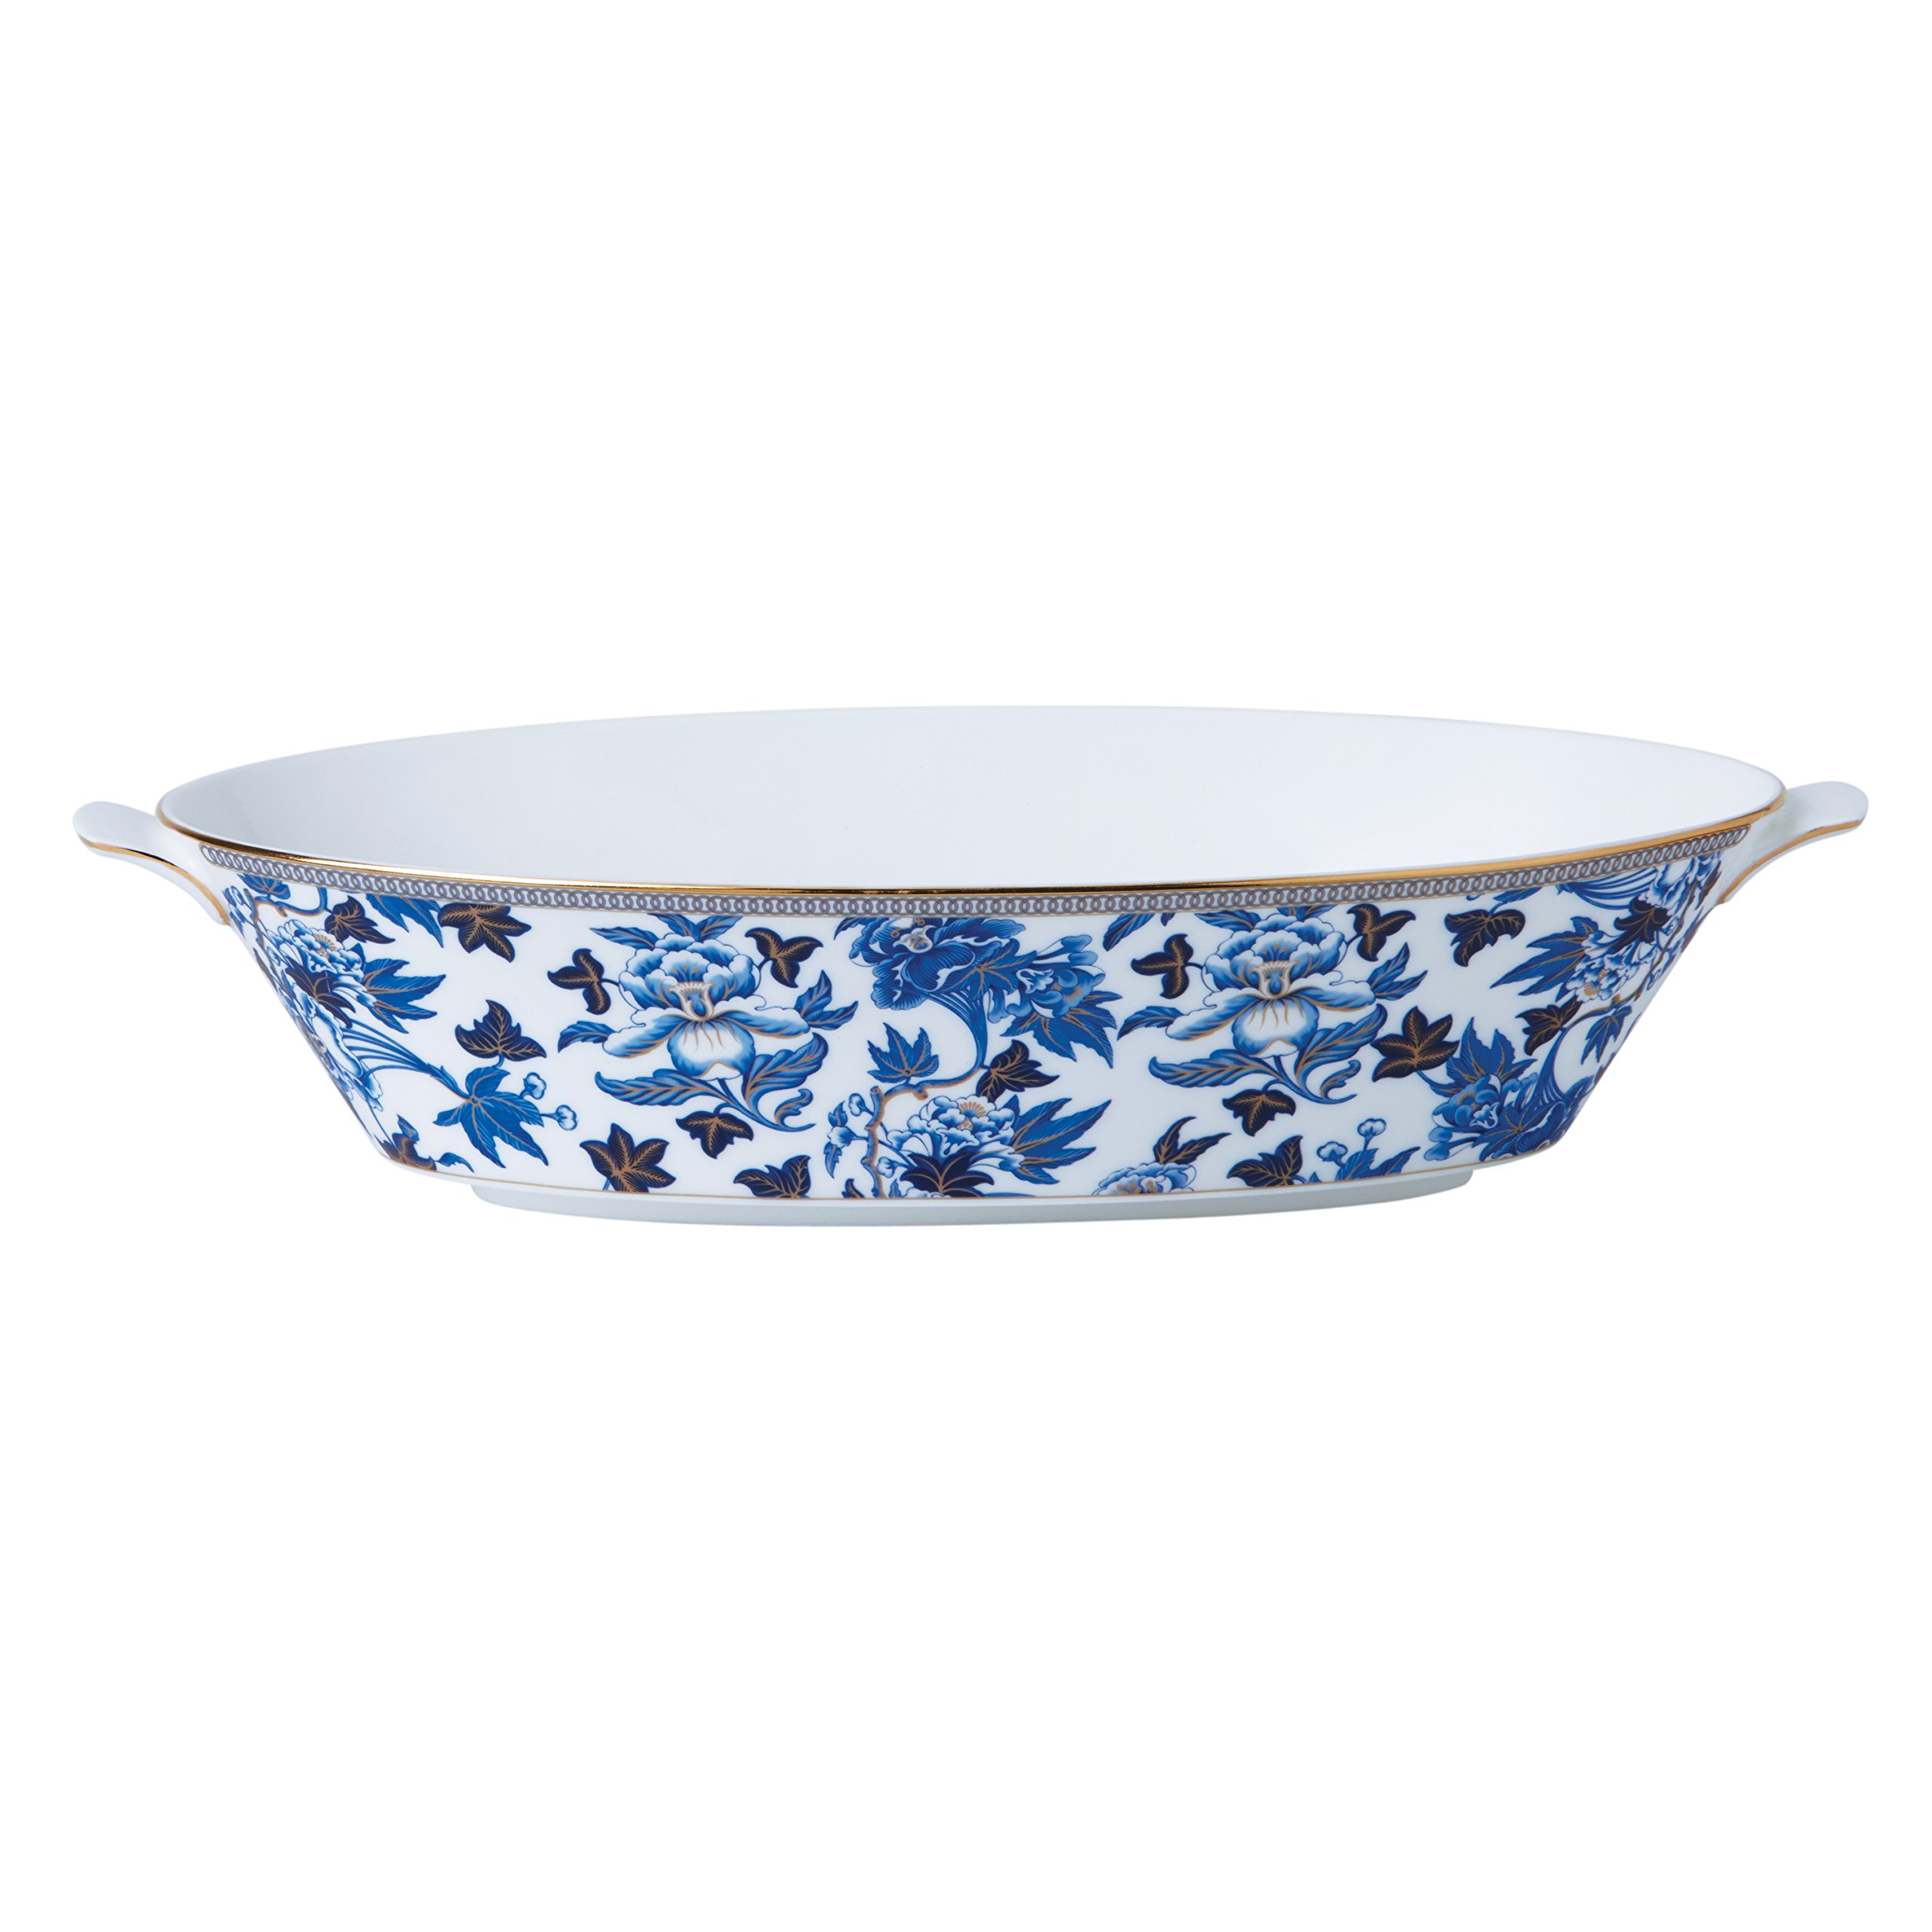 Wedgwood 40003901 Hibiscus Oval Serving Bowl